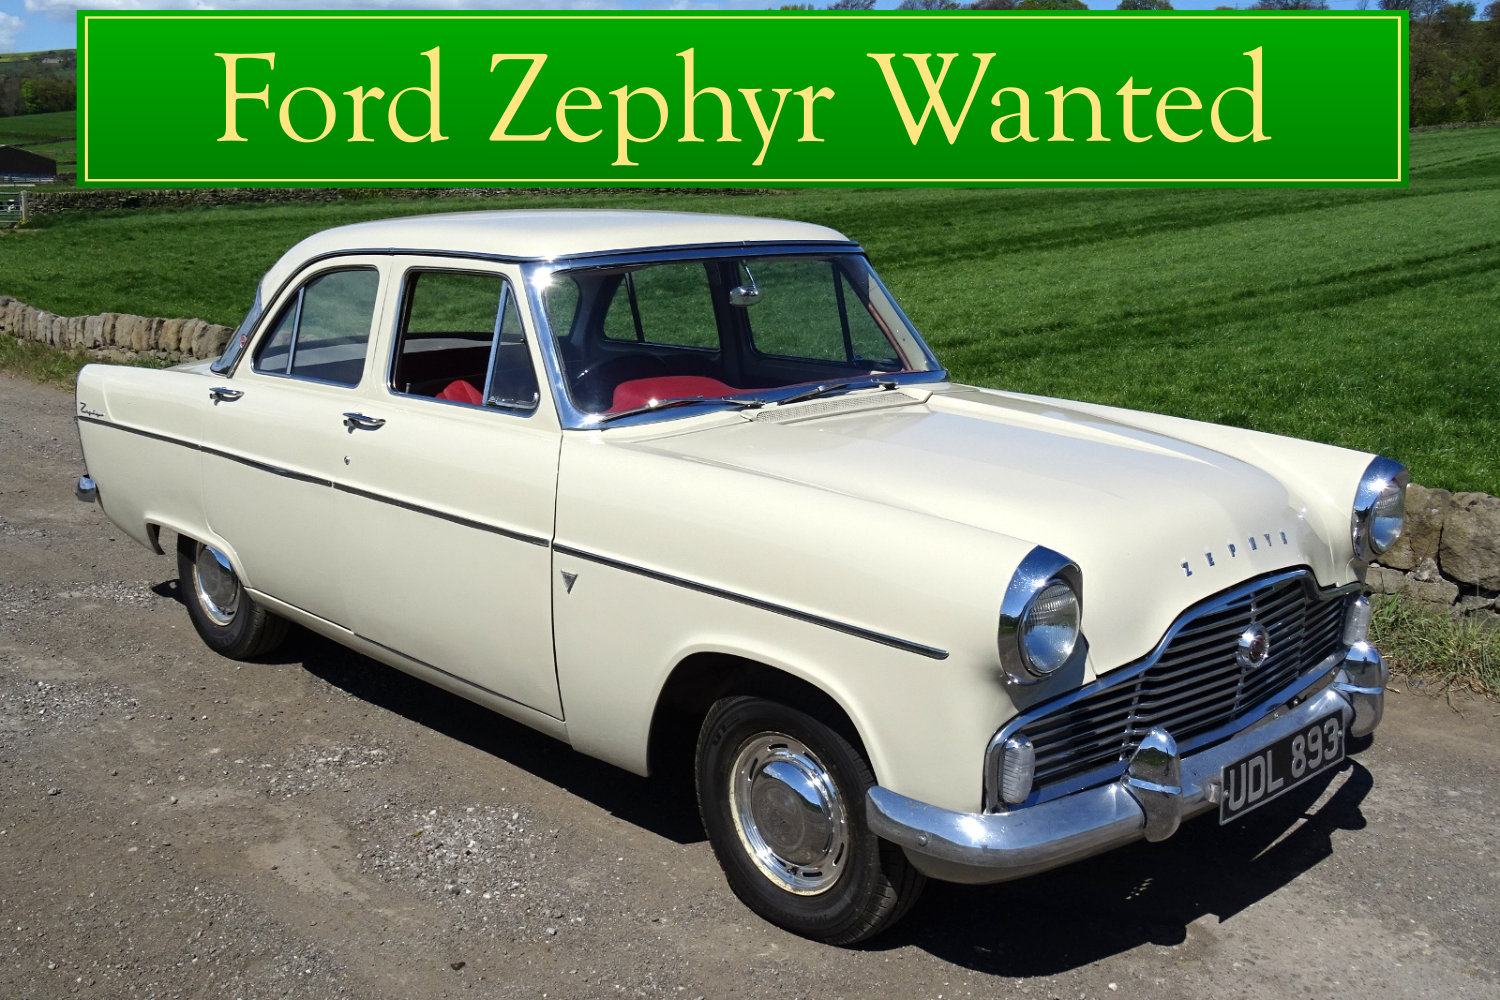 FORD ZODIAC MK3 WANTED, CLASSIC CARS WANTED, INSTANT PAYMENT Wanted (picture 4 of 6)